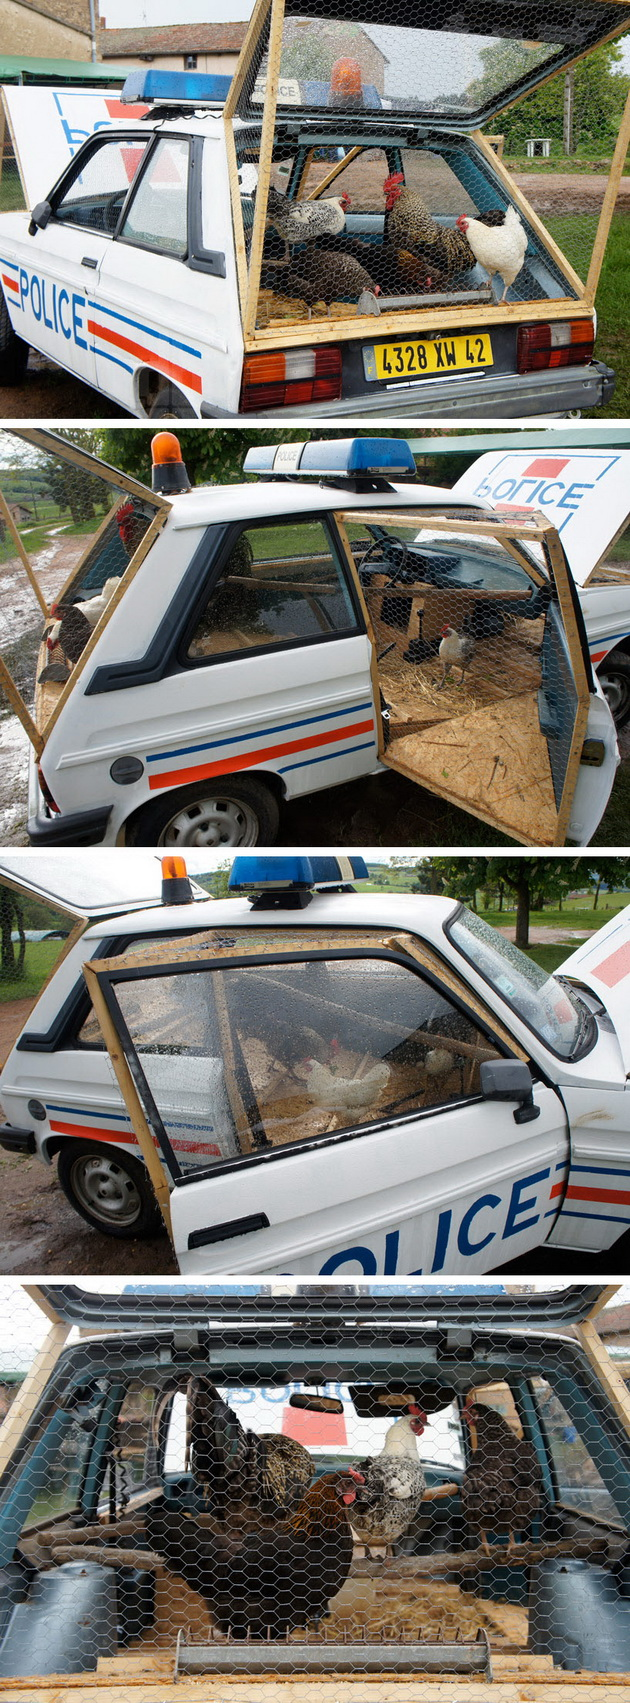 Police Car Turned into Chicken Coop